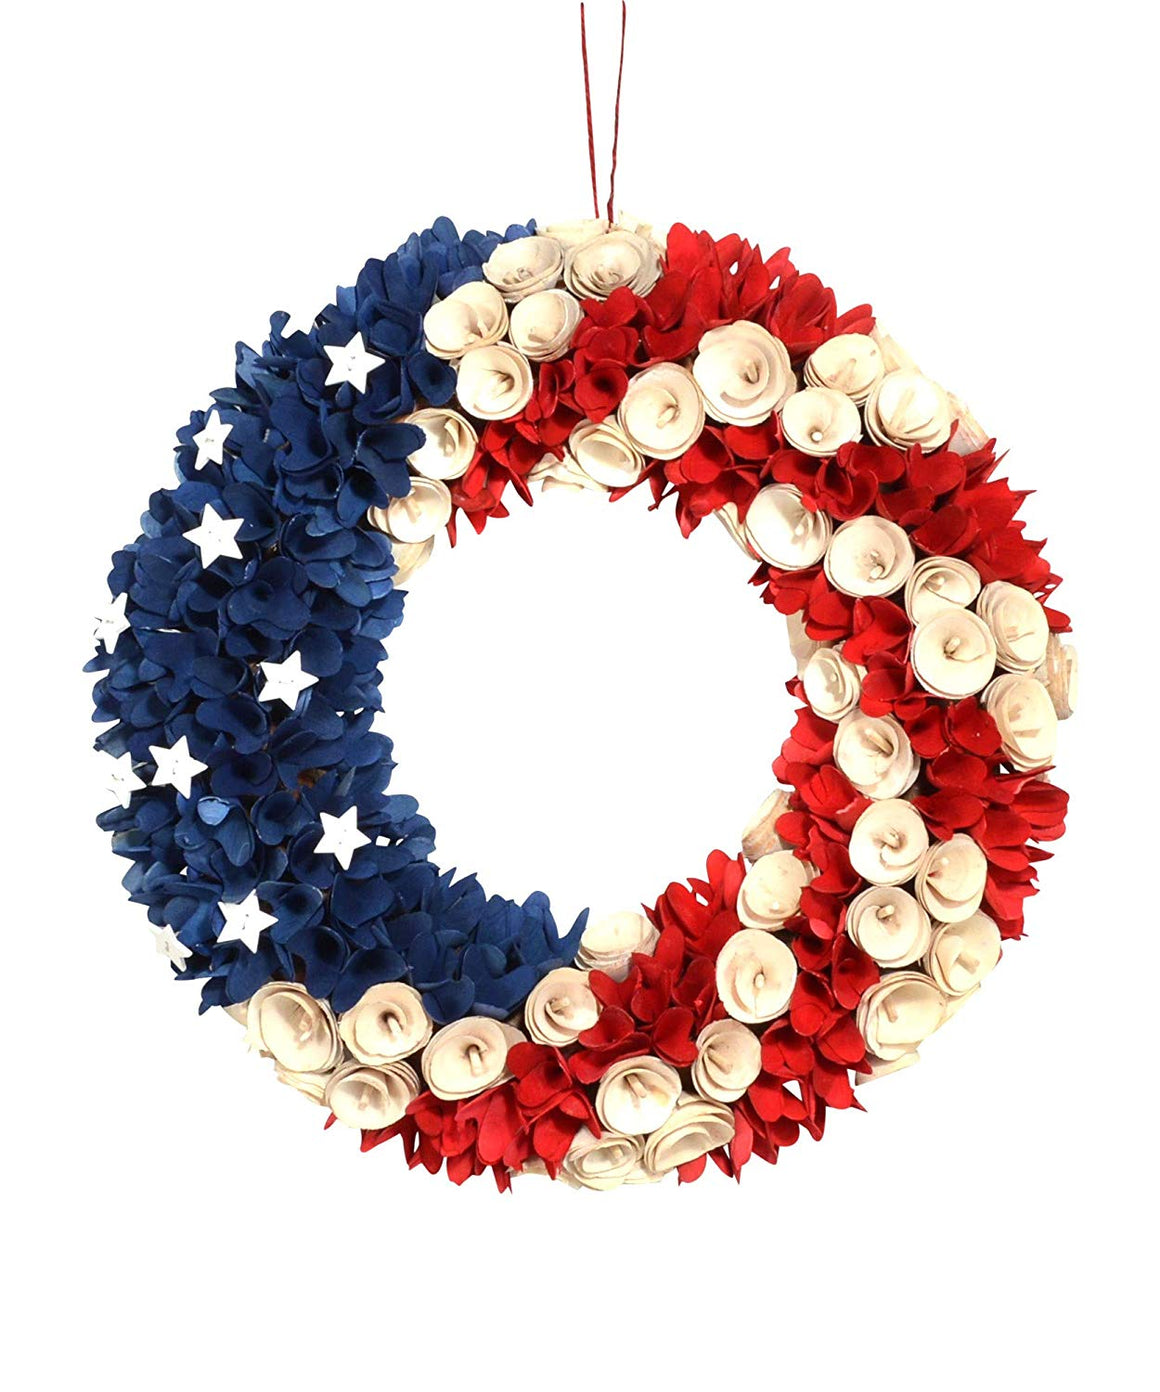 DE 18 Inch Wood Curled Roses Patriotic Wreath in Red, White, Blue, Antique White - Front Door Wreath